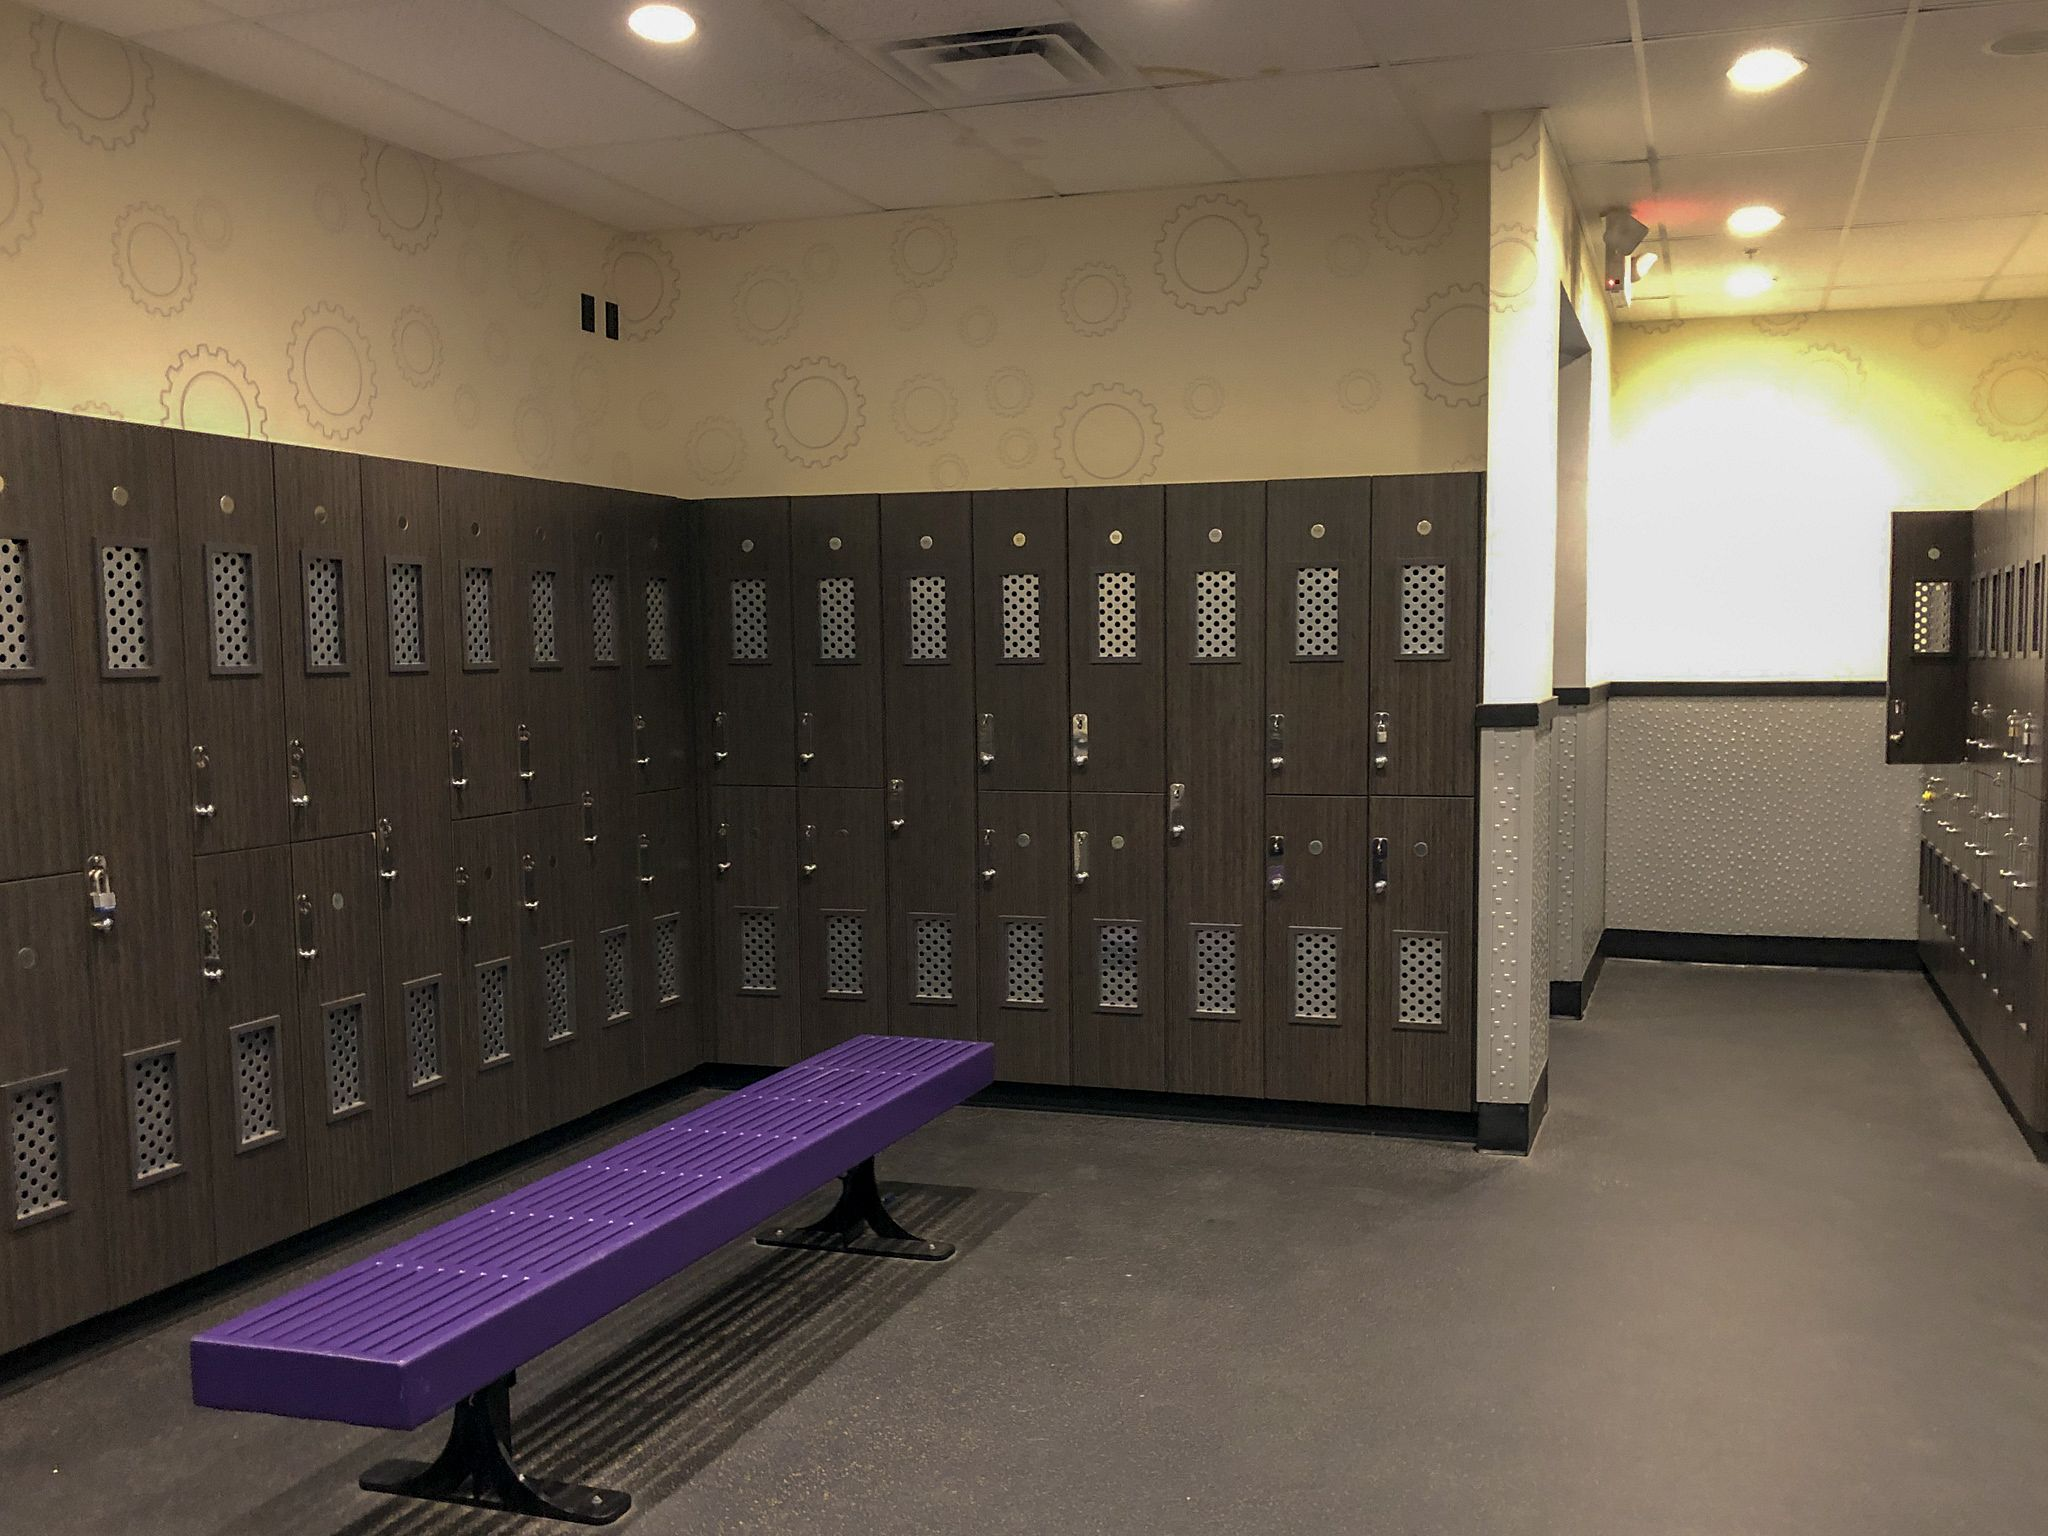 Planet Fitness Locker Rooms